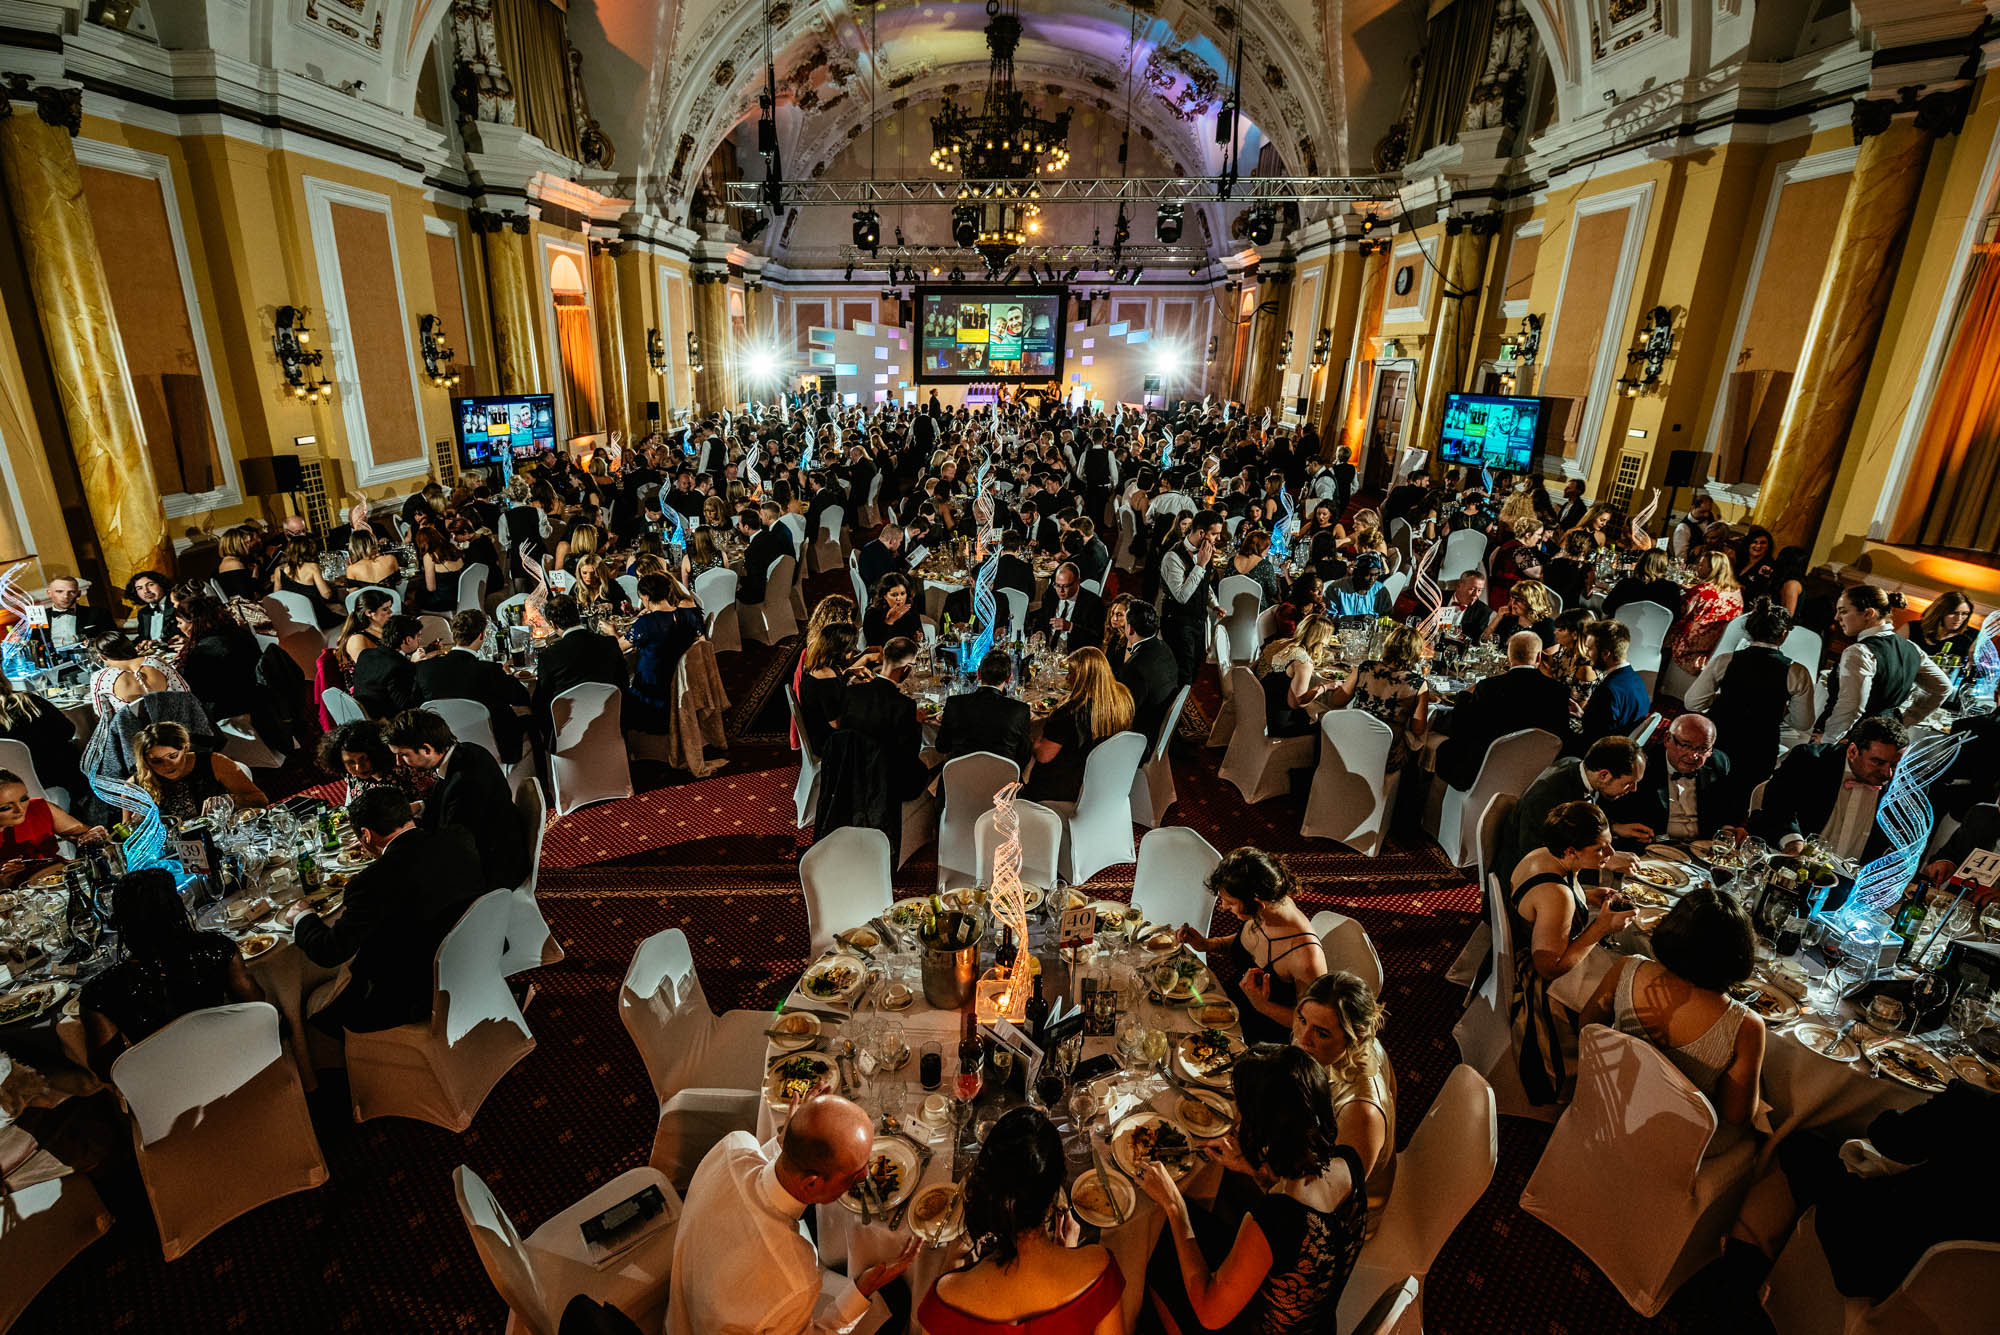 A photo of the interior of the City Hall in Cardiff during the cardiff life awards 2017